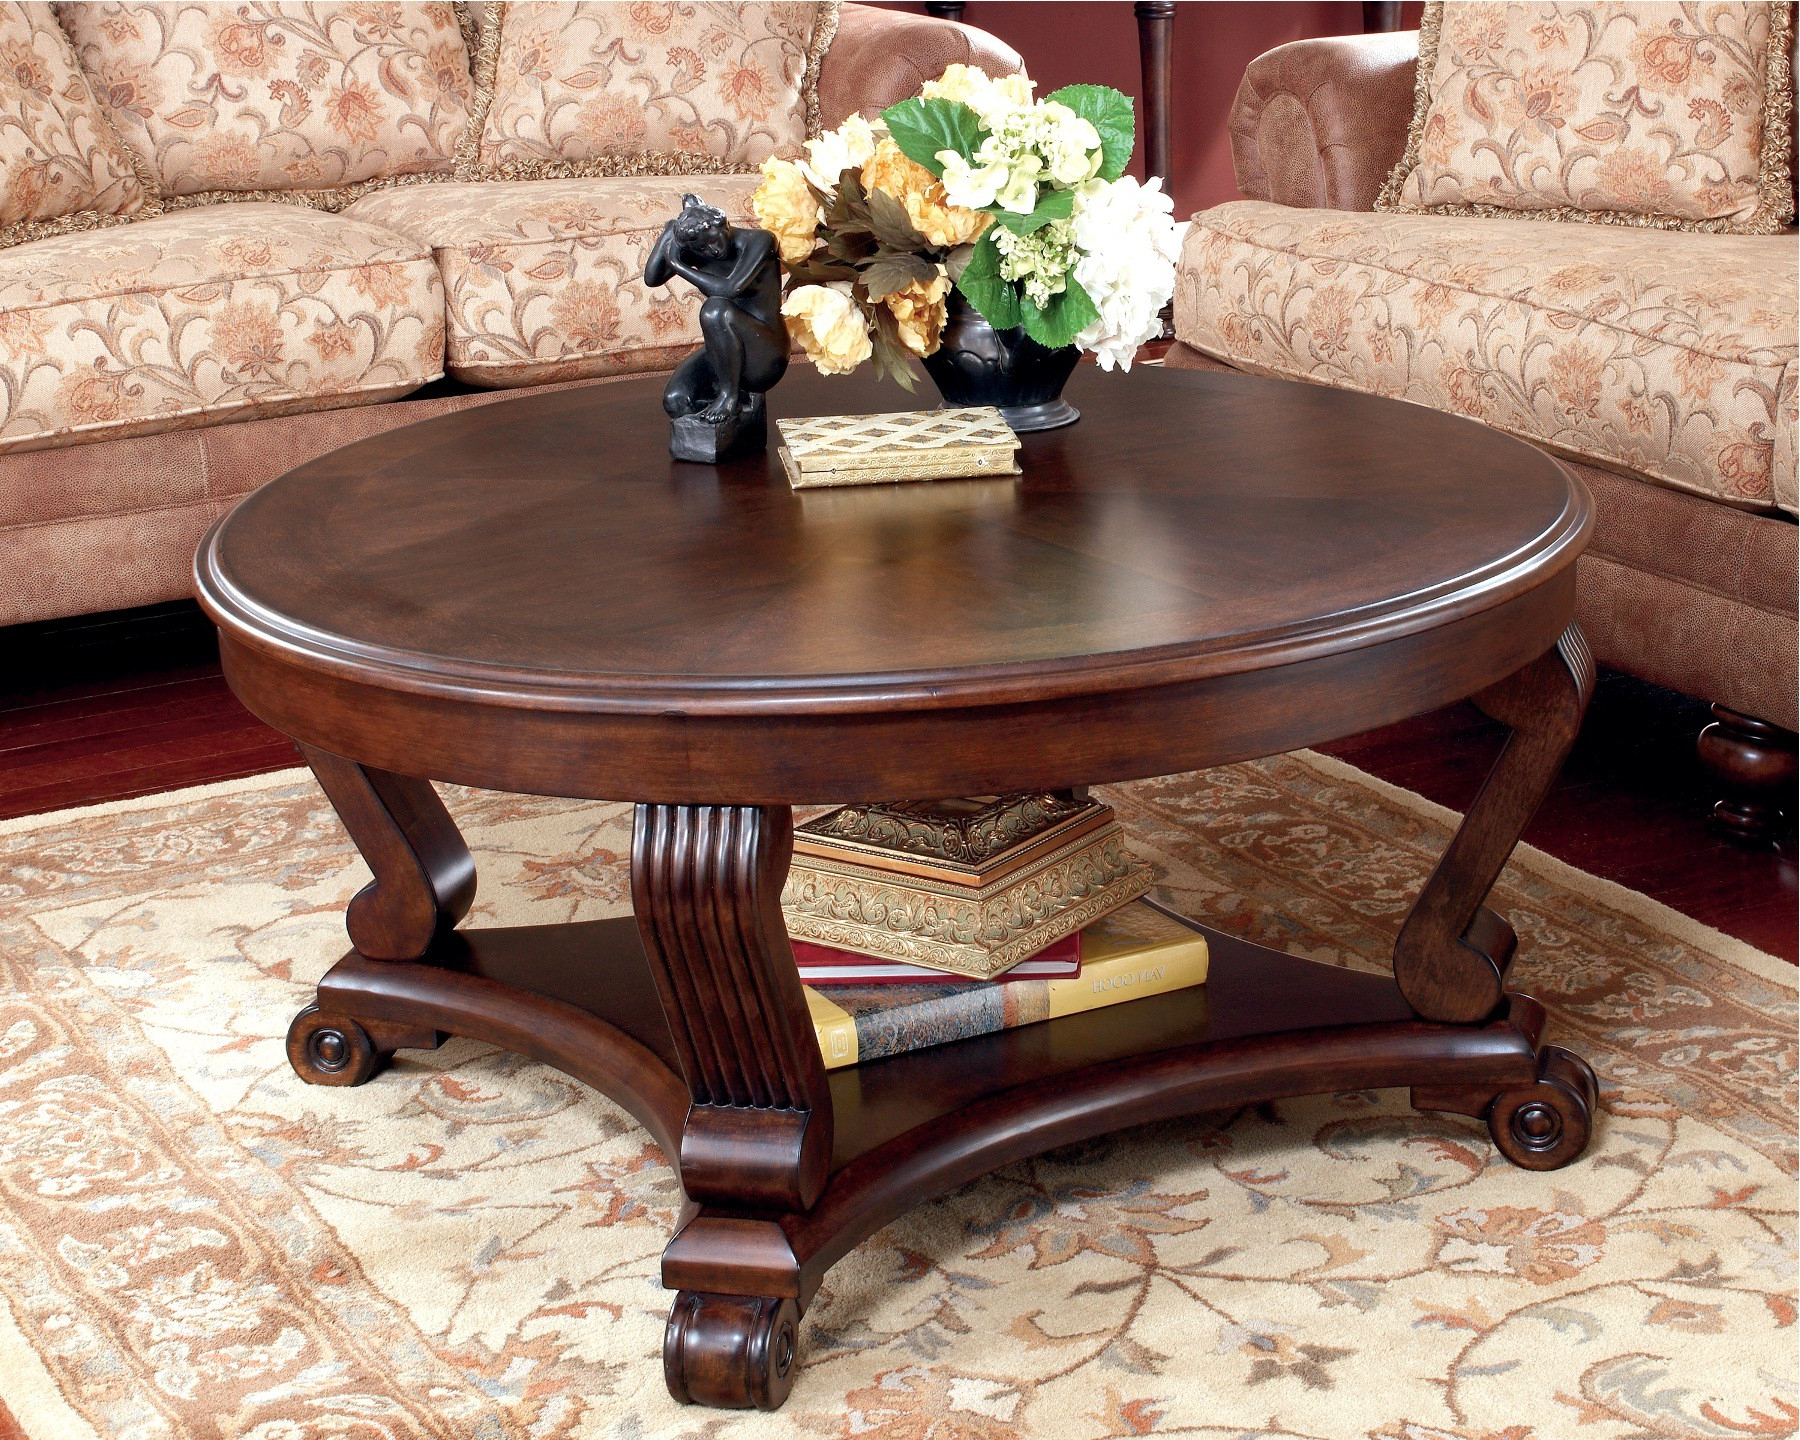 19 Round Coffee Table Design Collection For Complete Furniture Inside Most Current Round Carved Wood Coffee Tables (View 1 of 20)